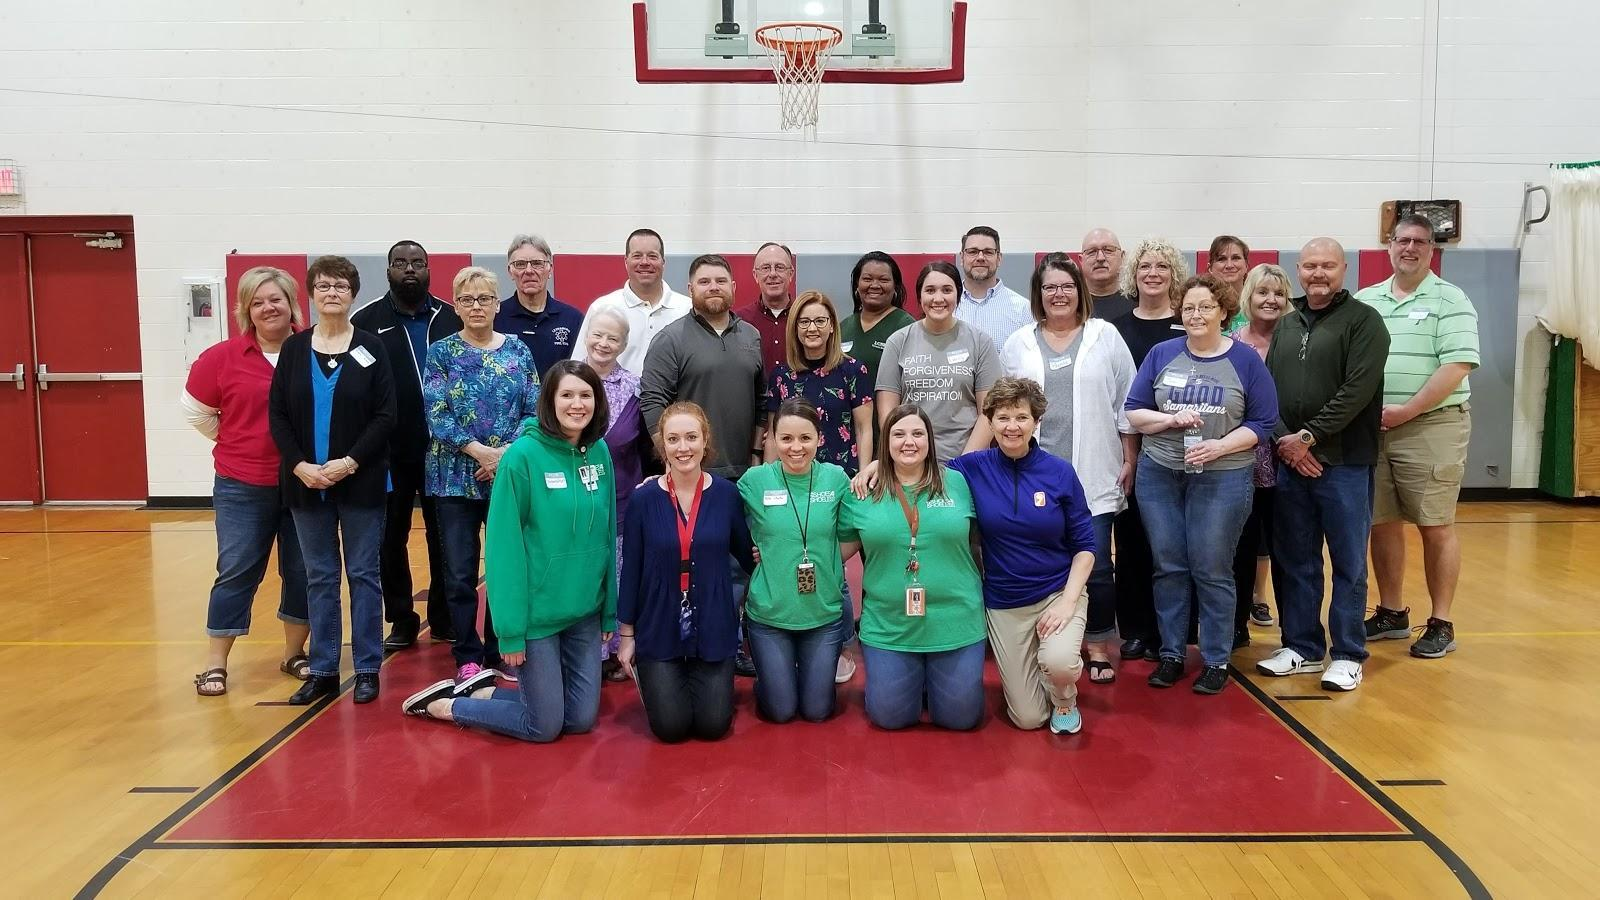 Preble County Success group photo with community volunteers